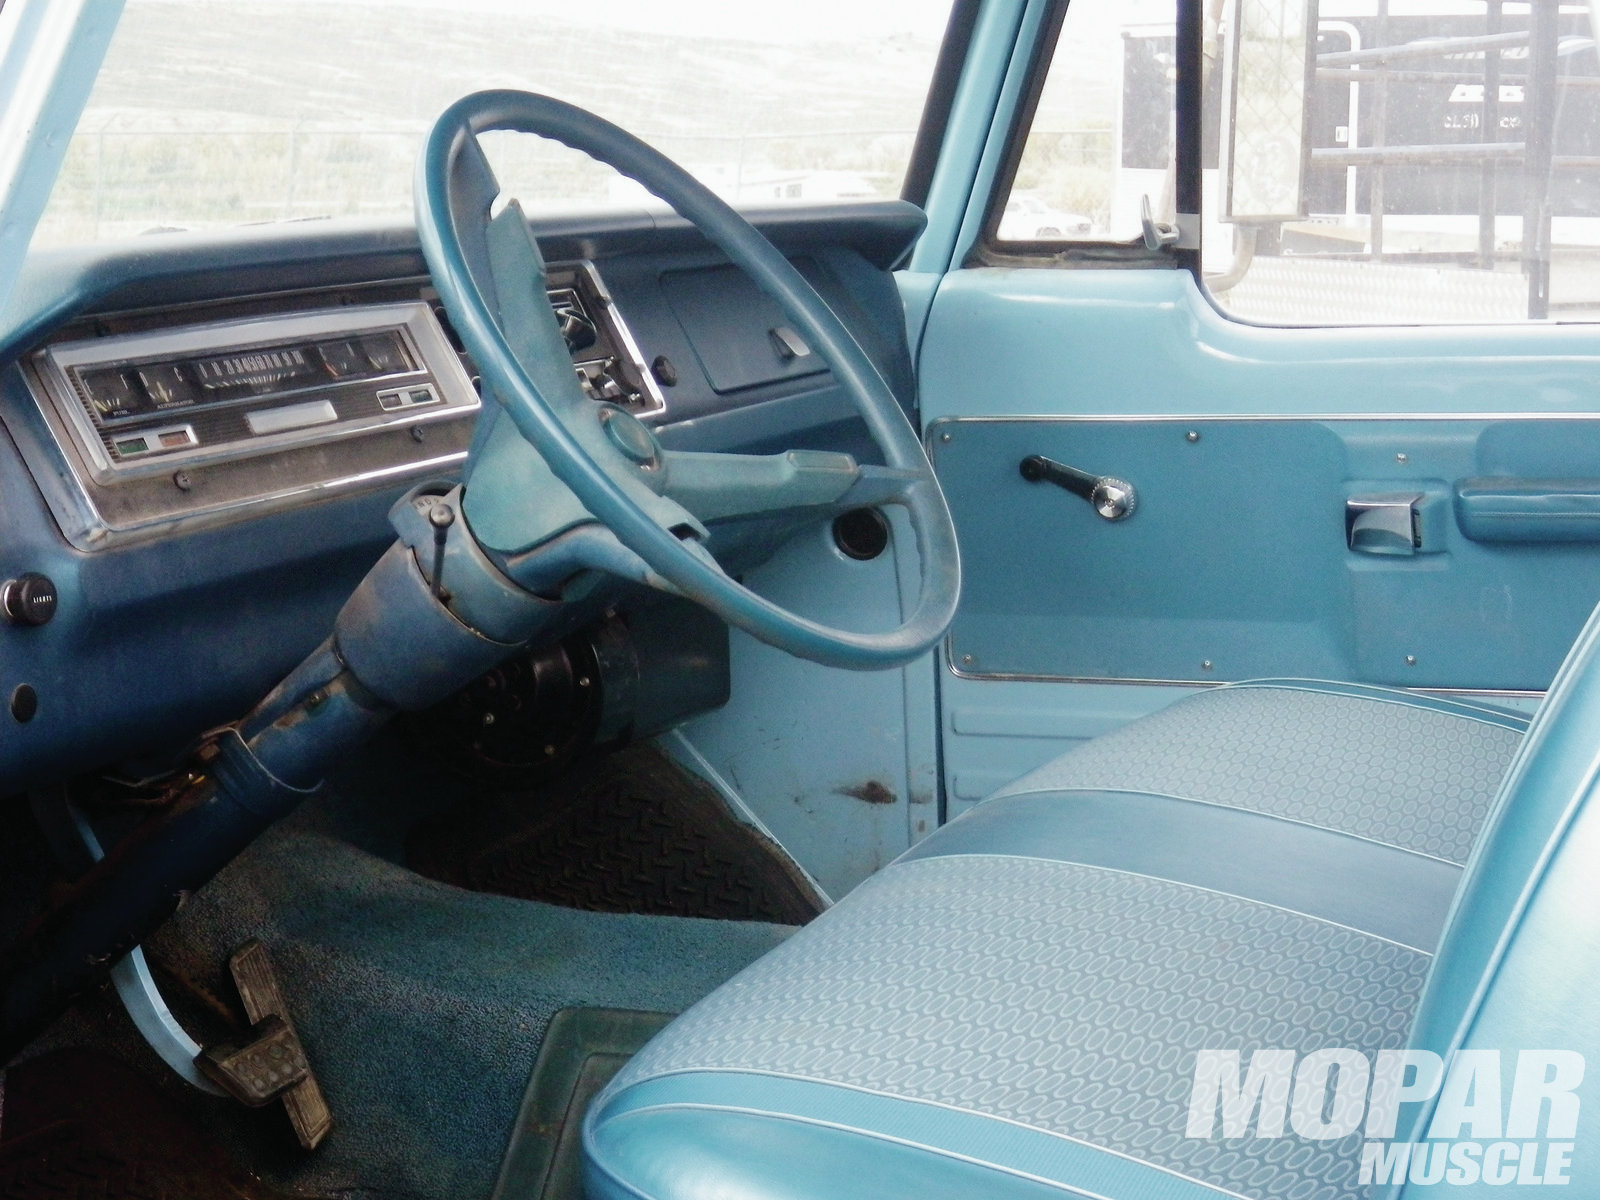 Interior: The odometer on this Dodge shows only 97,000 actual miles, and the interior is in great shape. It's unusual for a truck of this era to have carpeting, and the seat, dash, headliner, and door panels are in amazing shape for their age.